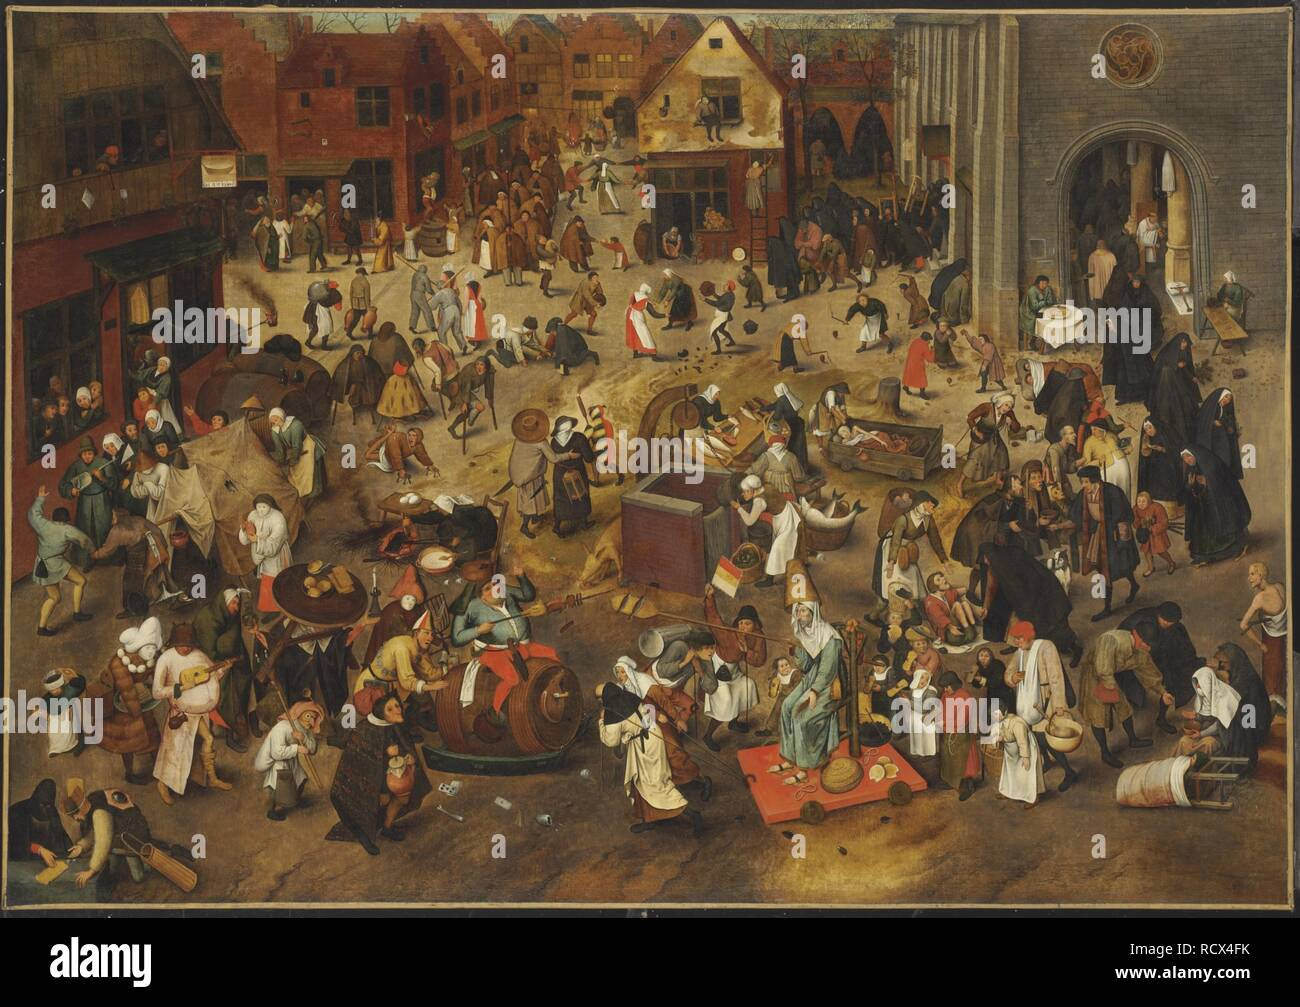 The Fight Between Carnival and Lent. Museum: Art History Museum, Vienne. Author: Bruegel (Brueghel), Pieter, the Elder. Stock Photo